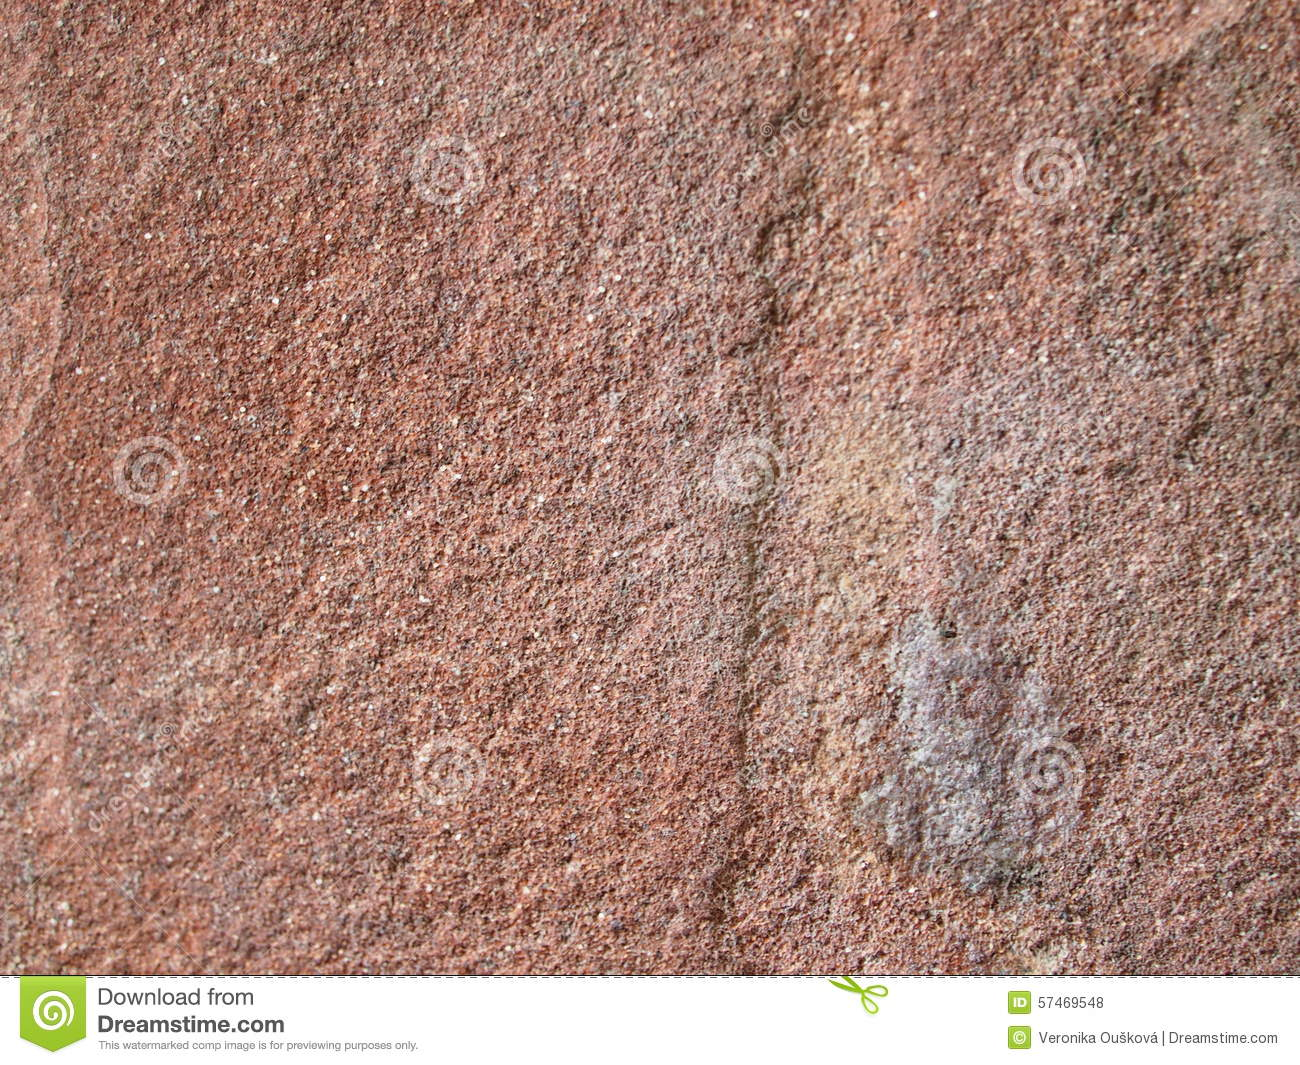 Detail Look At Arkosic Sandstone Stone Stock Photo.